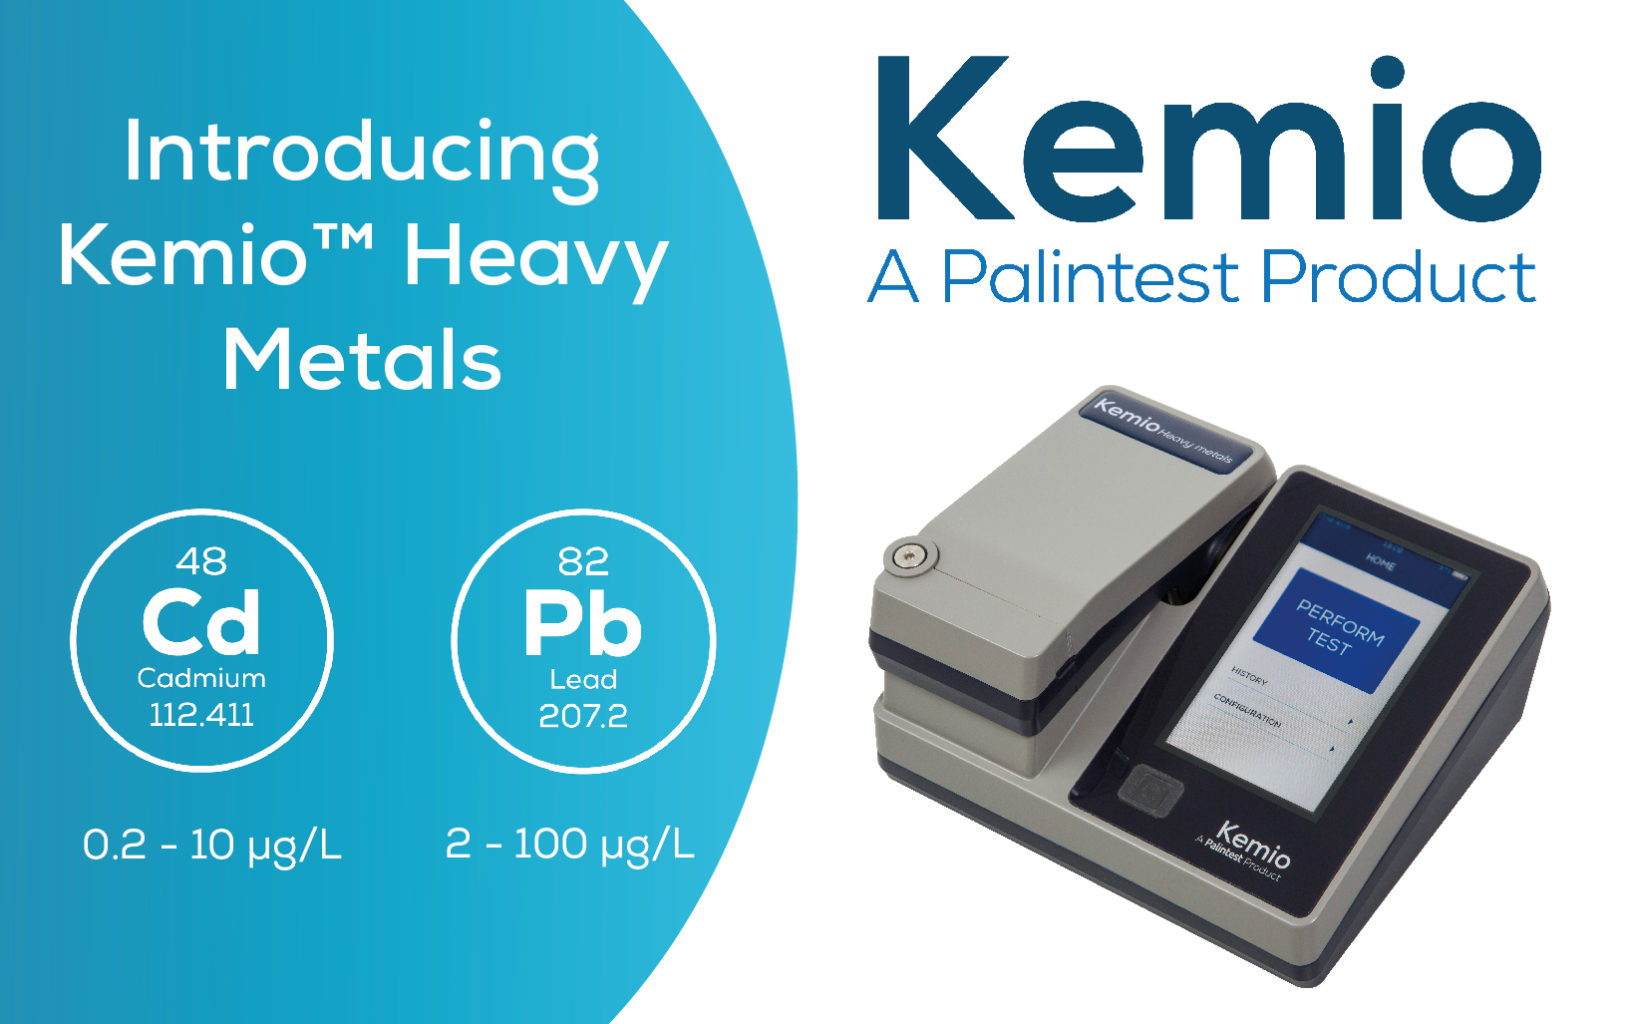 Introducing Kemio™ Heavy Metals